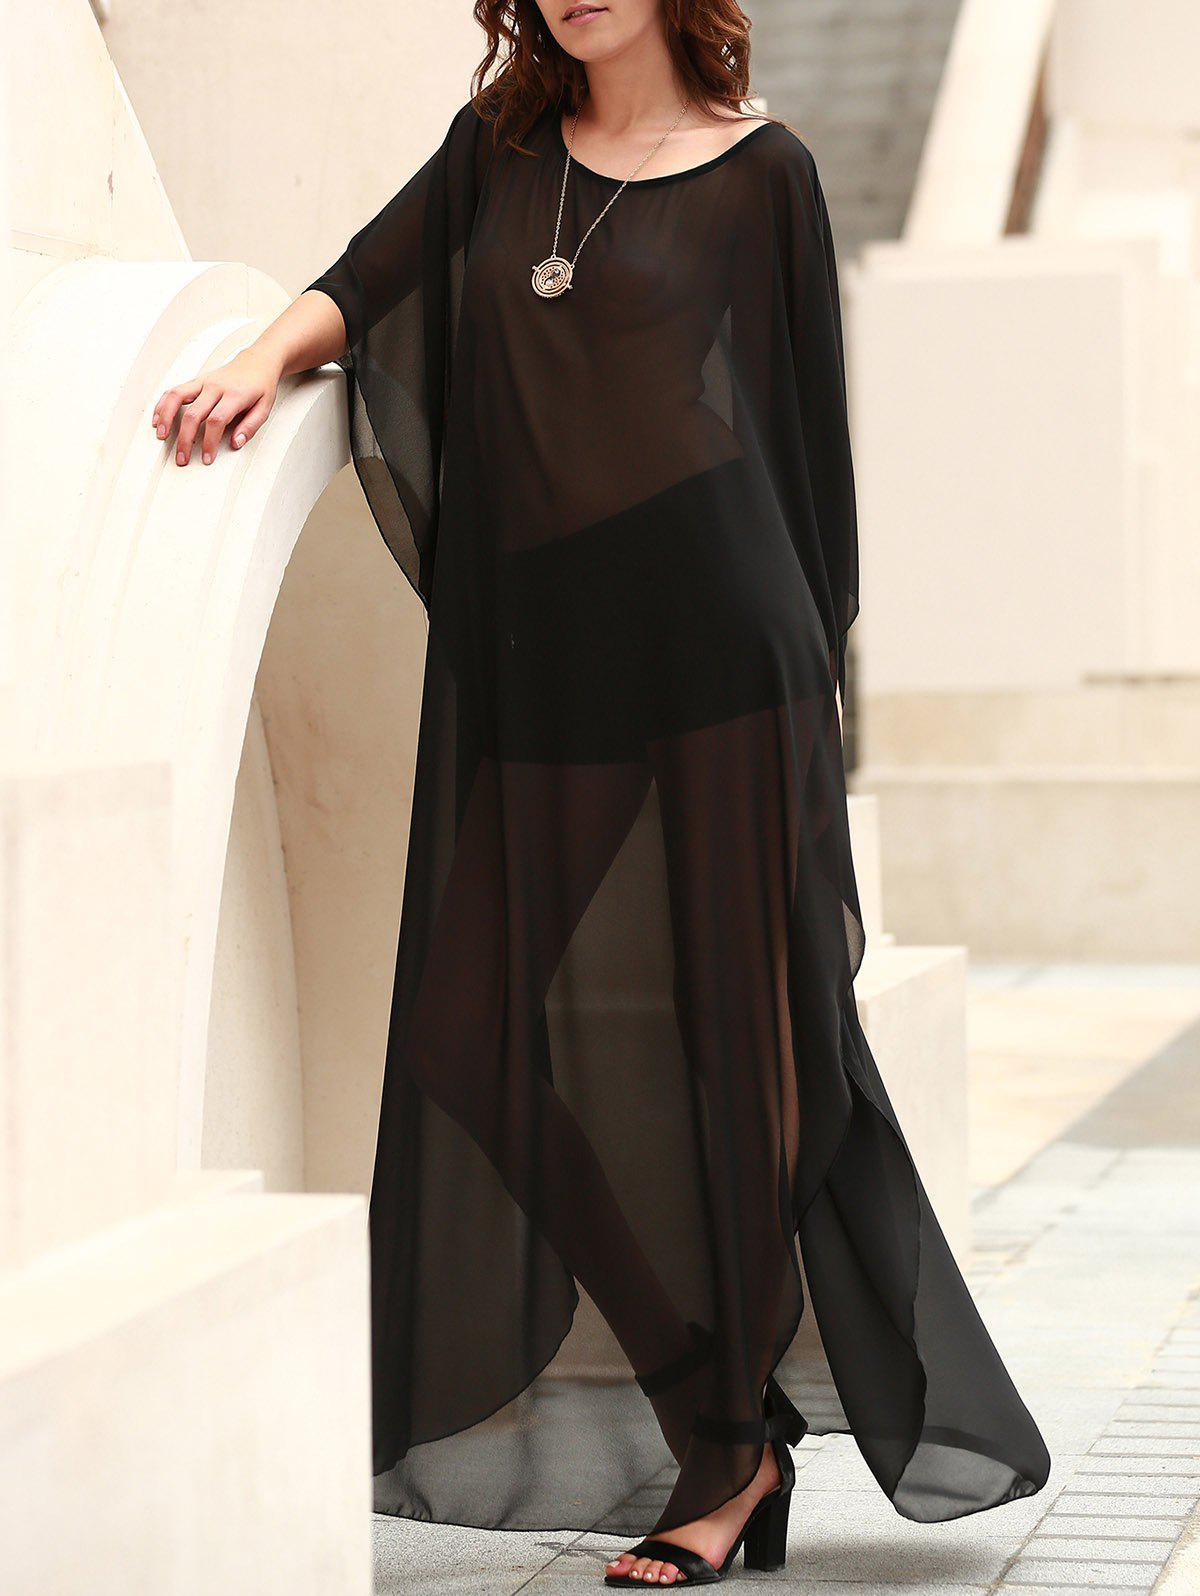 Sexy Scoop Neck 3/4 Sleeve See-Through Slit Women's Cover-Up - BLACK ONE SIZE(FIT SIZE XS TO M)